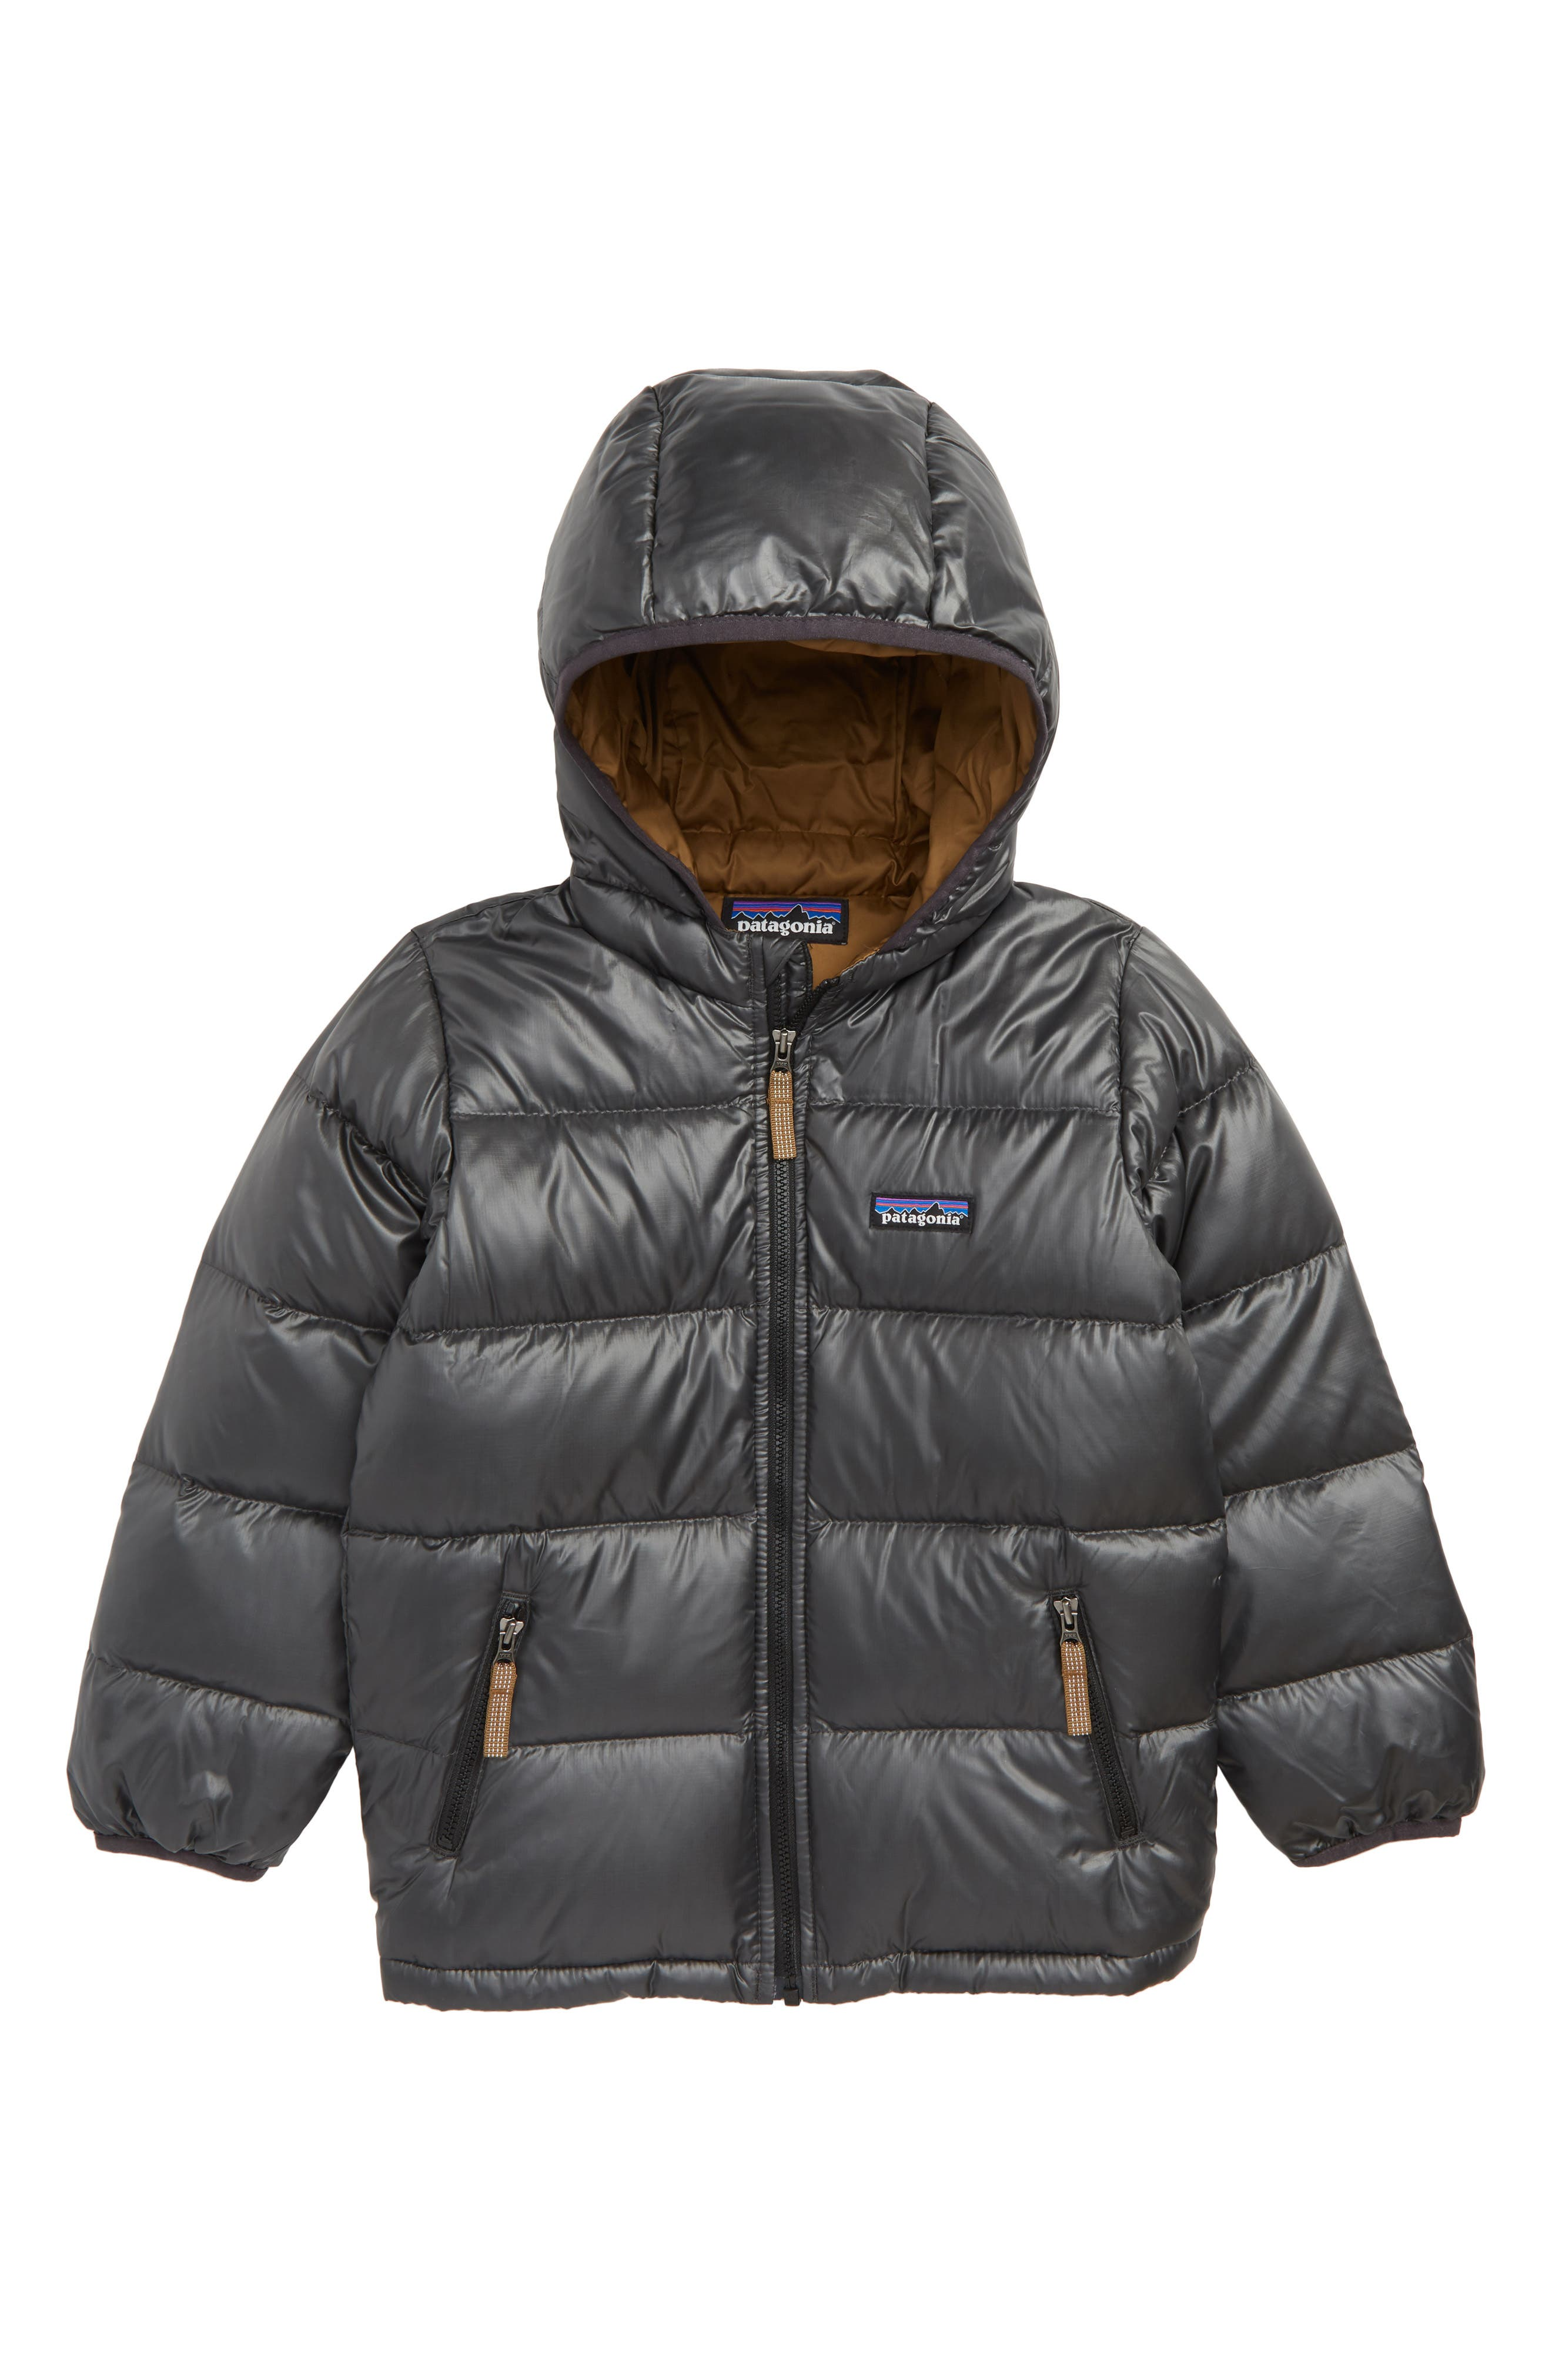 PATAGONIA, Reversible Water Resistant 600-Fill-Power Down Hooded Jacket, Main thumbnail 1, color, 020